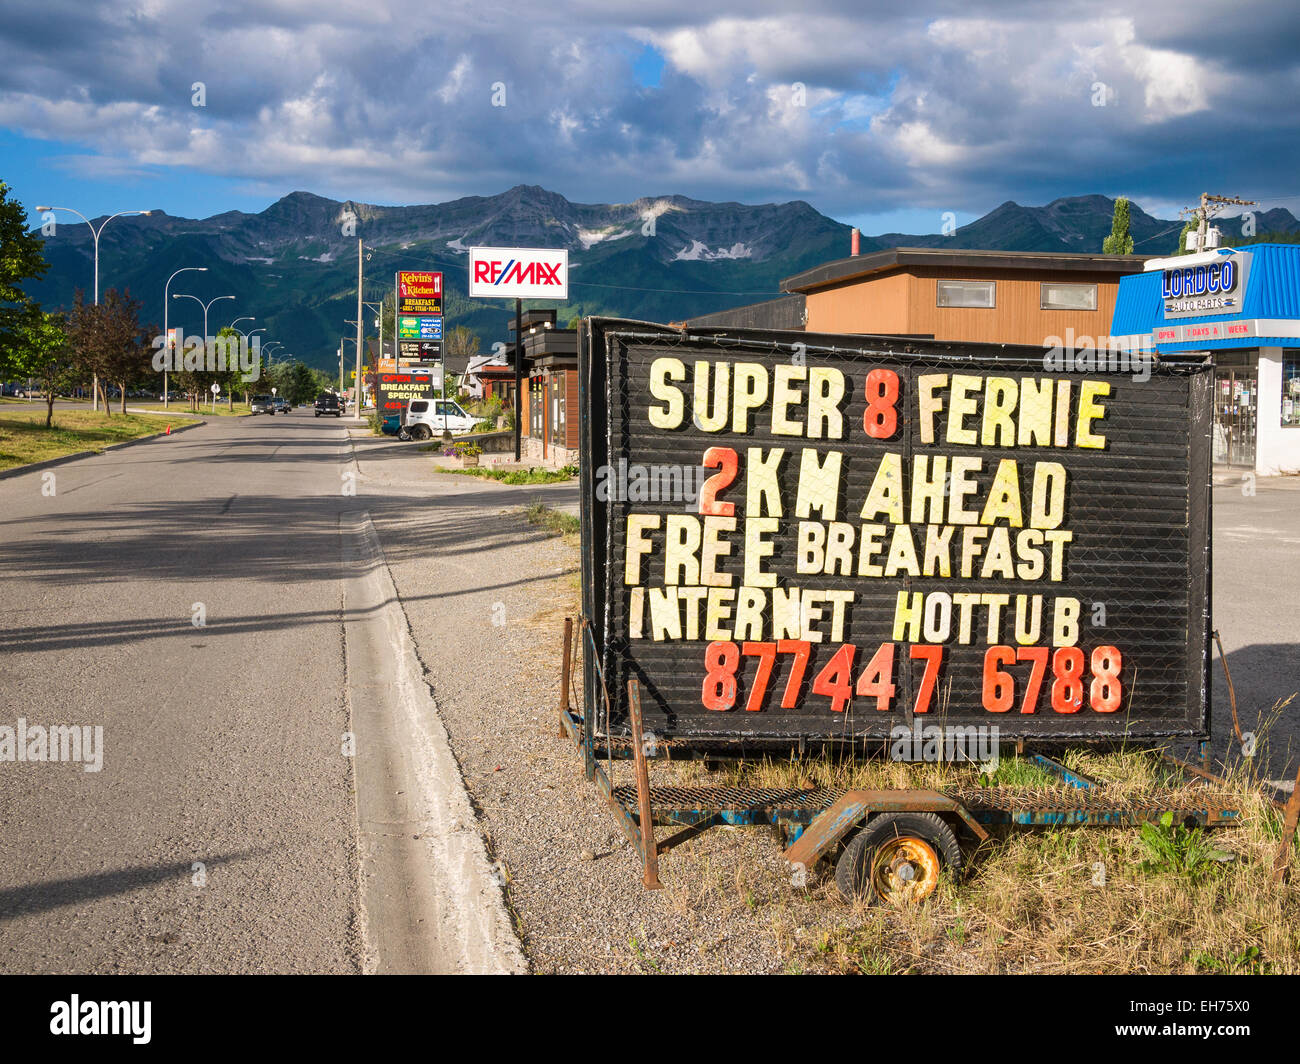 Advertising for 'Super 8' motel, Fernie, BC, Canada.  The city of Fernie is encircled by the Rocky Mountains - Stock Image